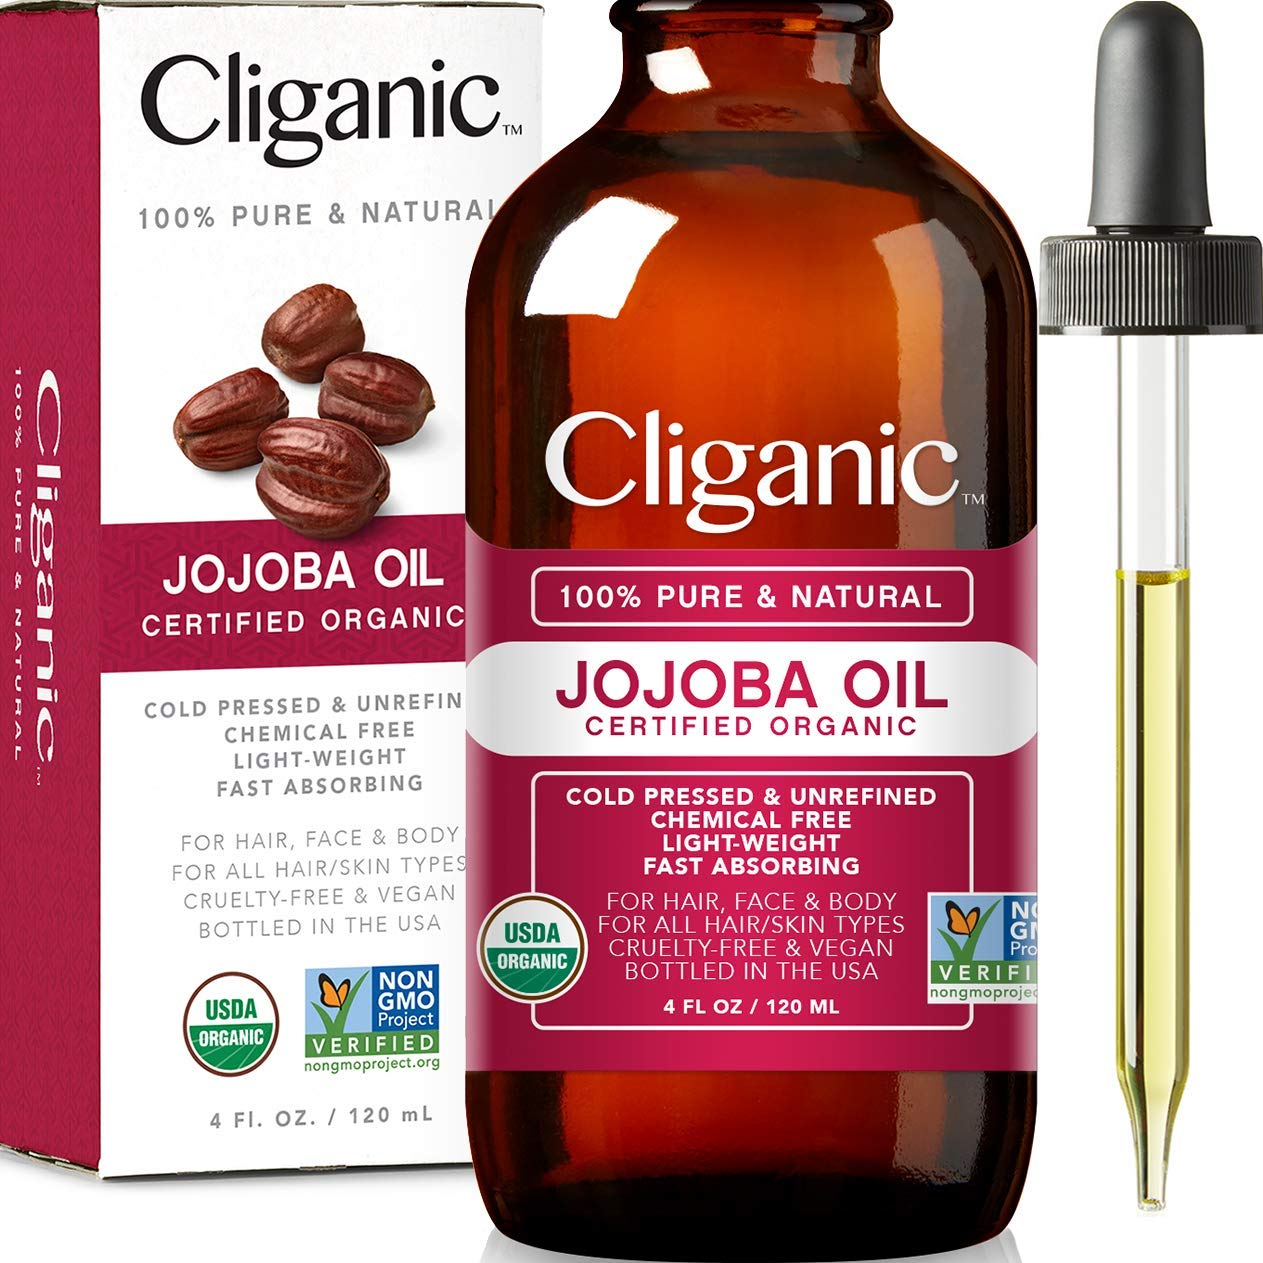 Cliganic USDA Organic Jojoba Oil, 100% Pure (4oz Large) | Natural Cold Pressed Unrefined Hexane Free Oil for Hair & Face